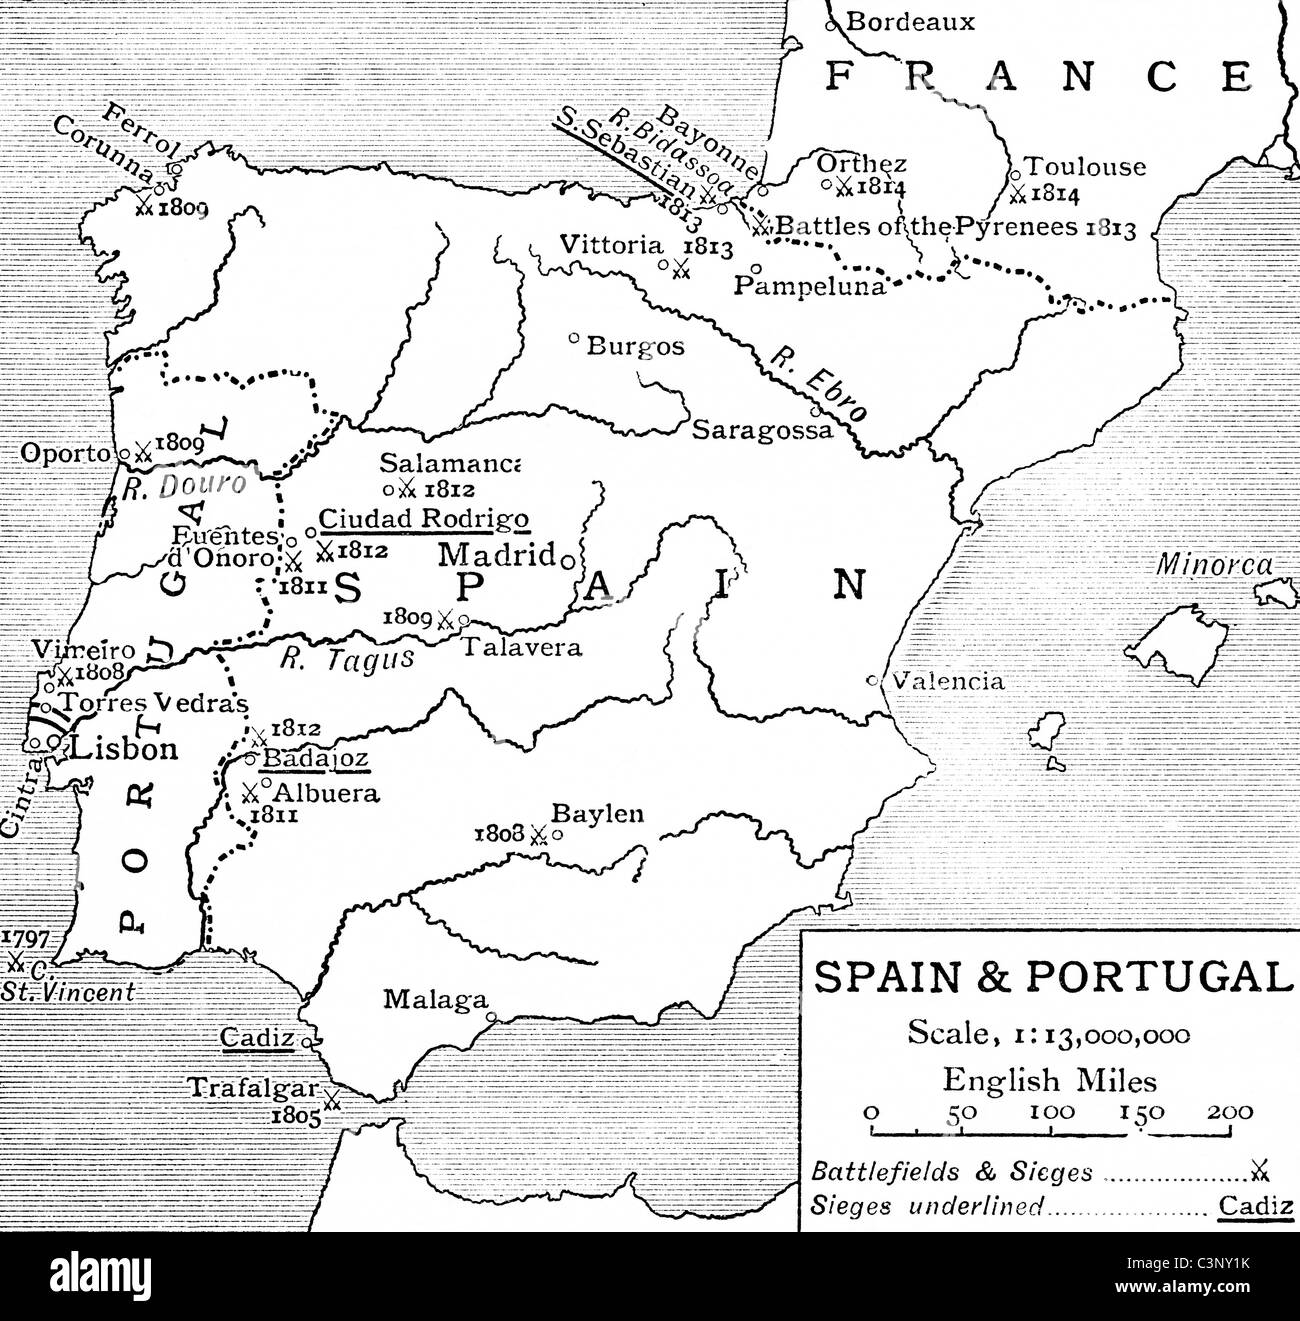 Map Of Spain Over Time.Map Of Spain And Portugal At The Time Of The Peninsular War From